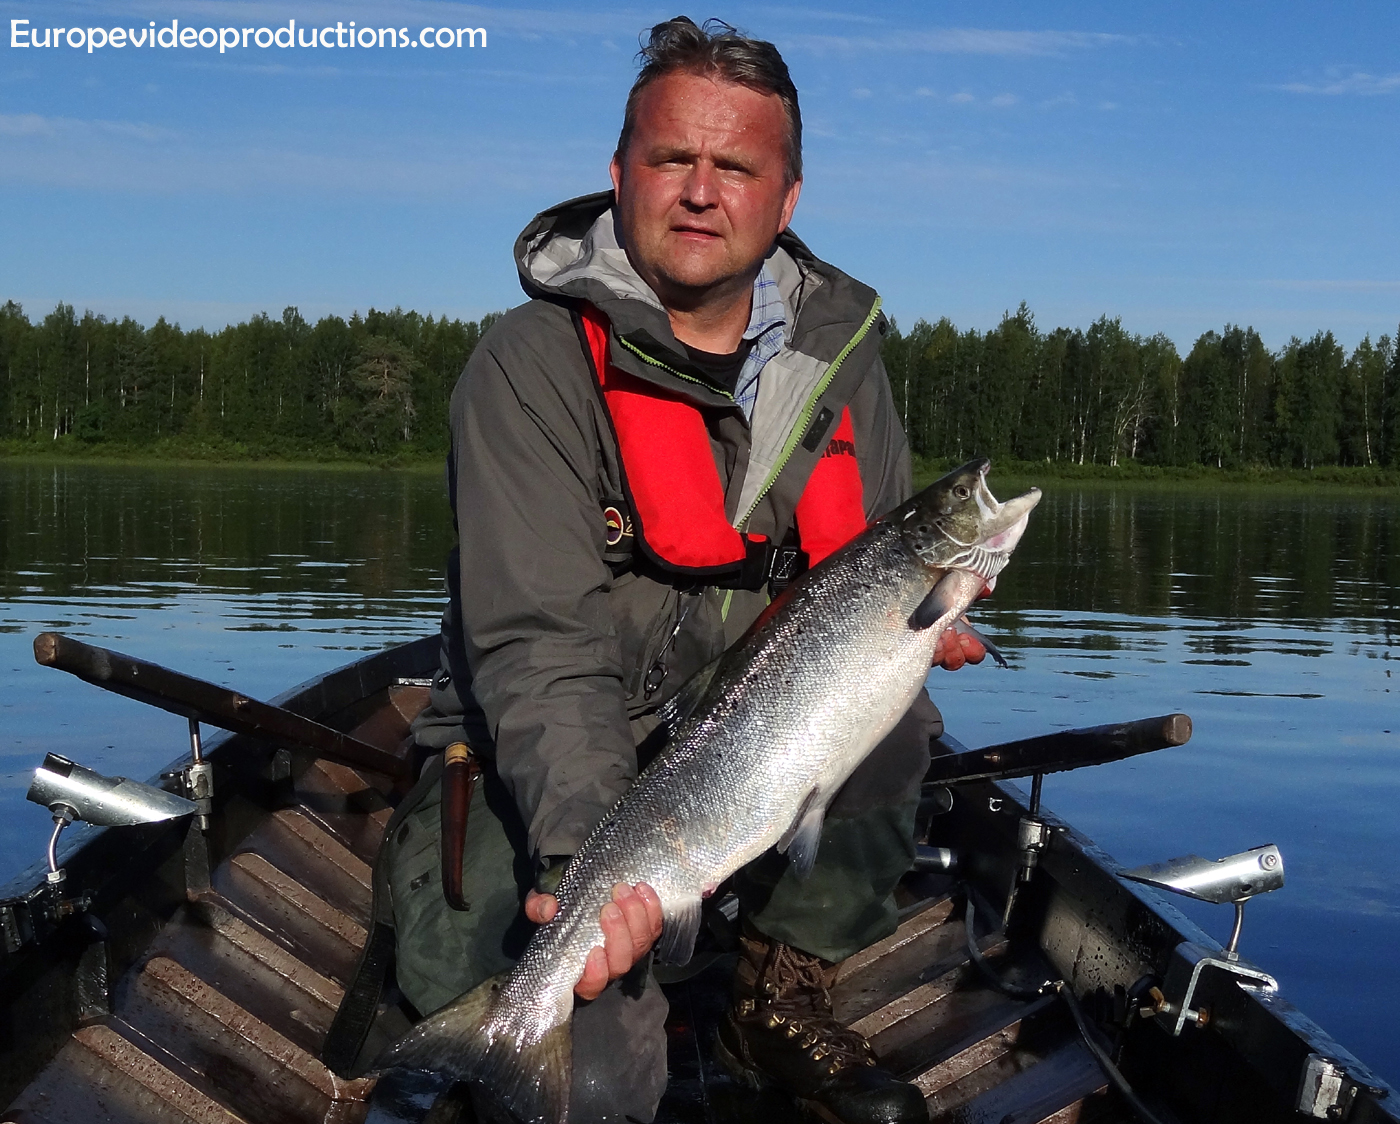 Finland's fishing capital – Pello in Lapland in Tornio river valley